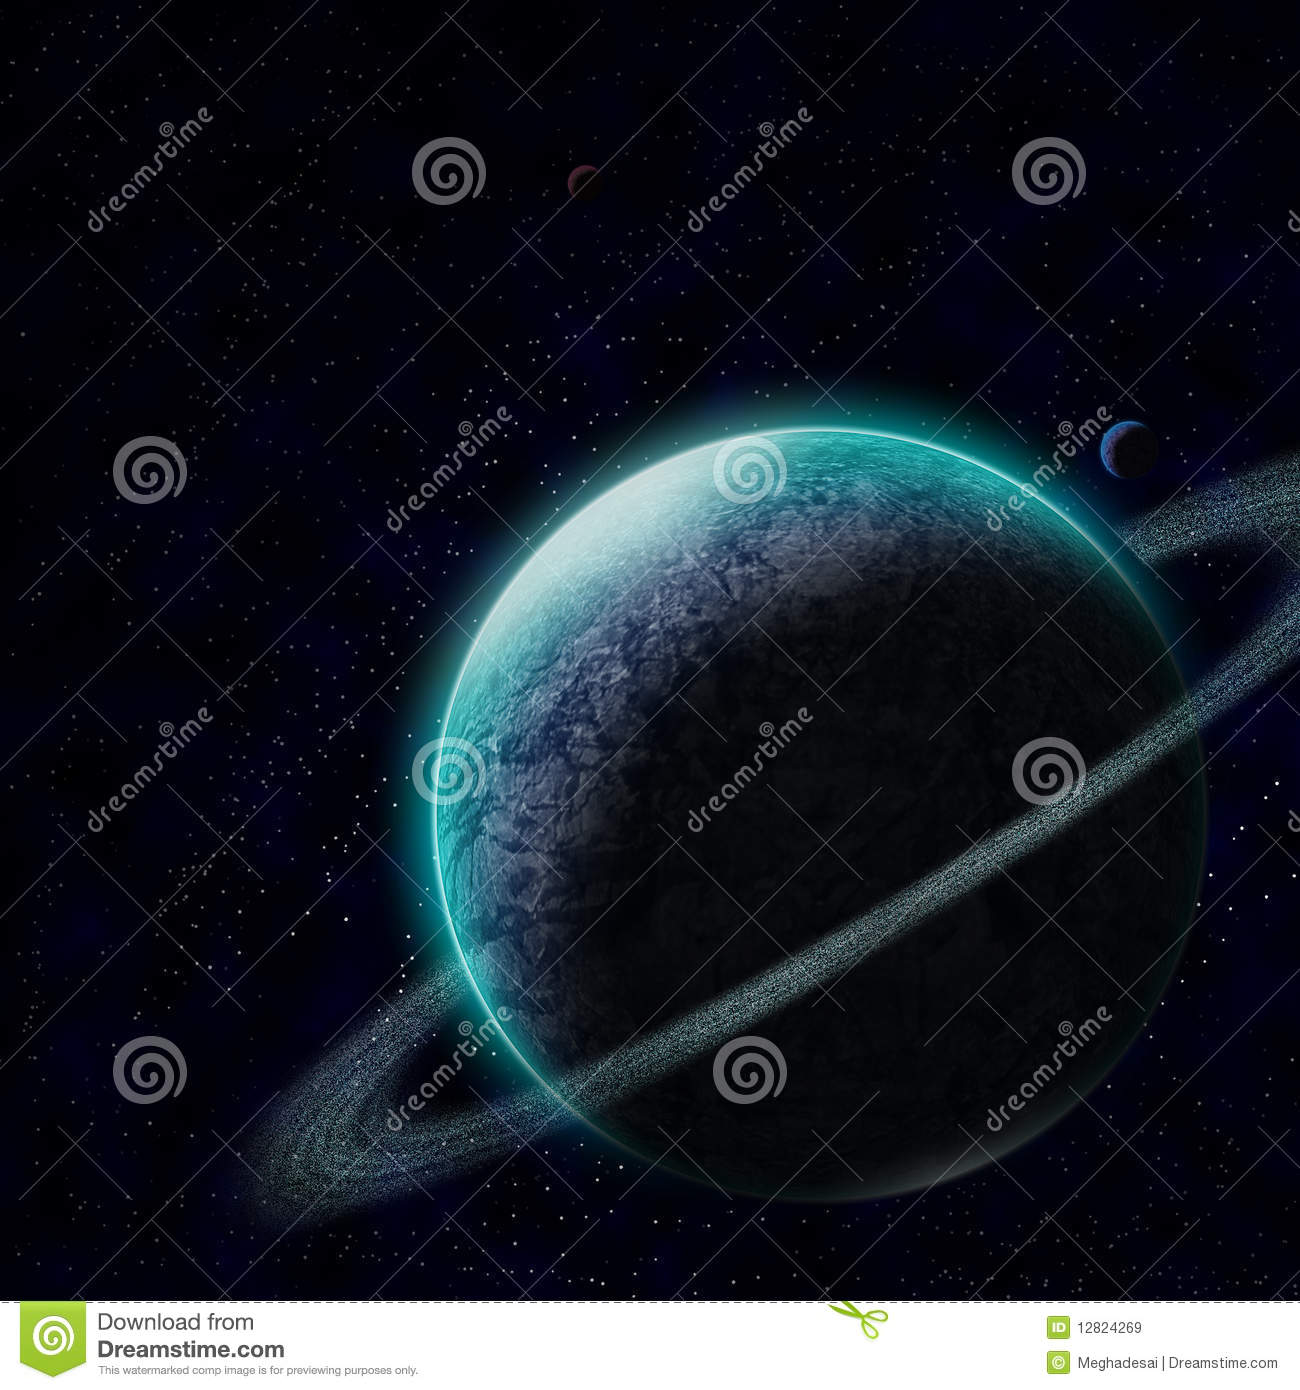 starry sky with planets - photo #14